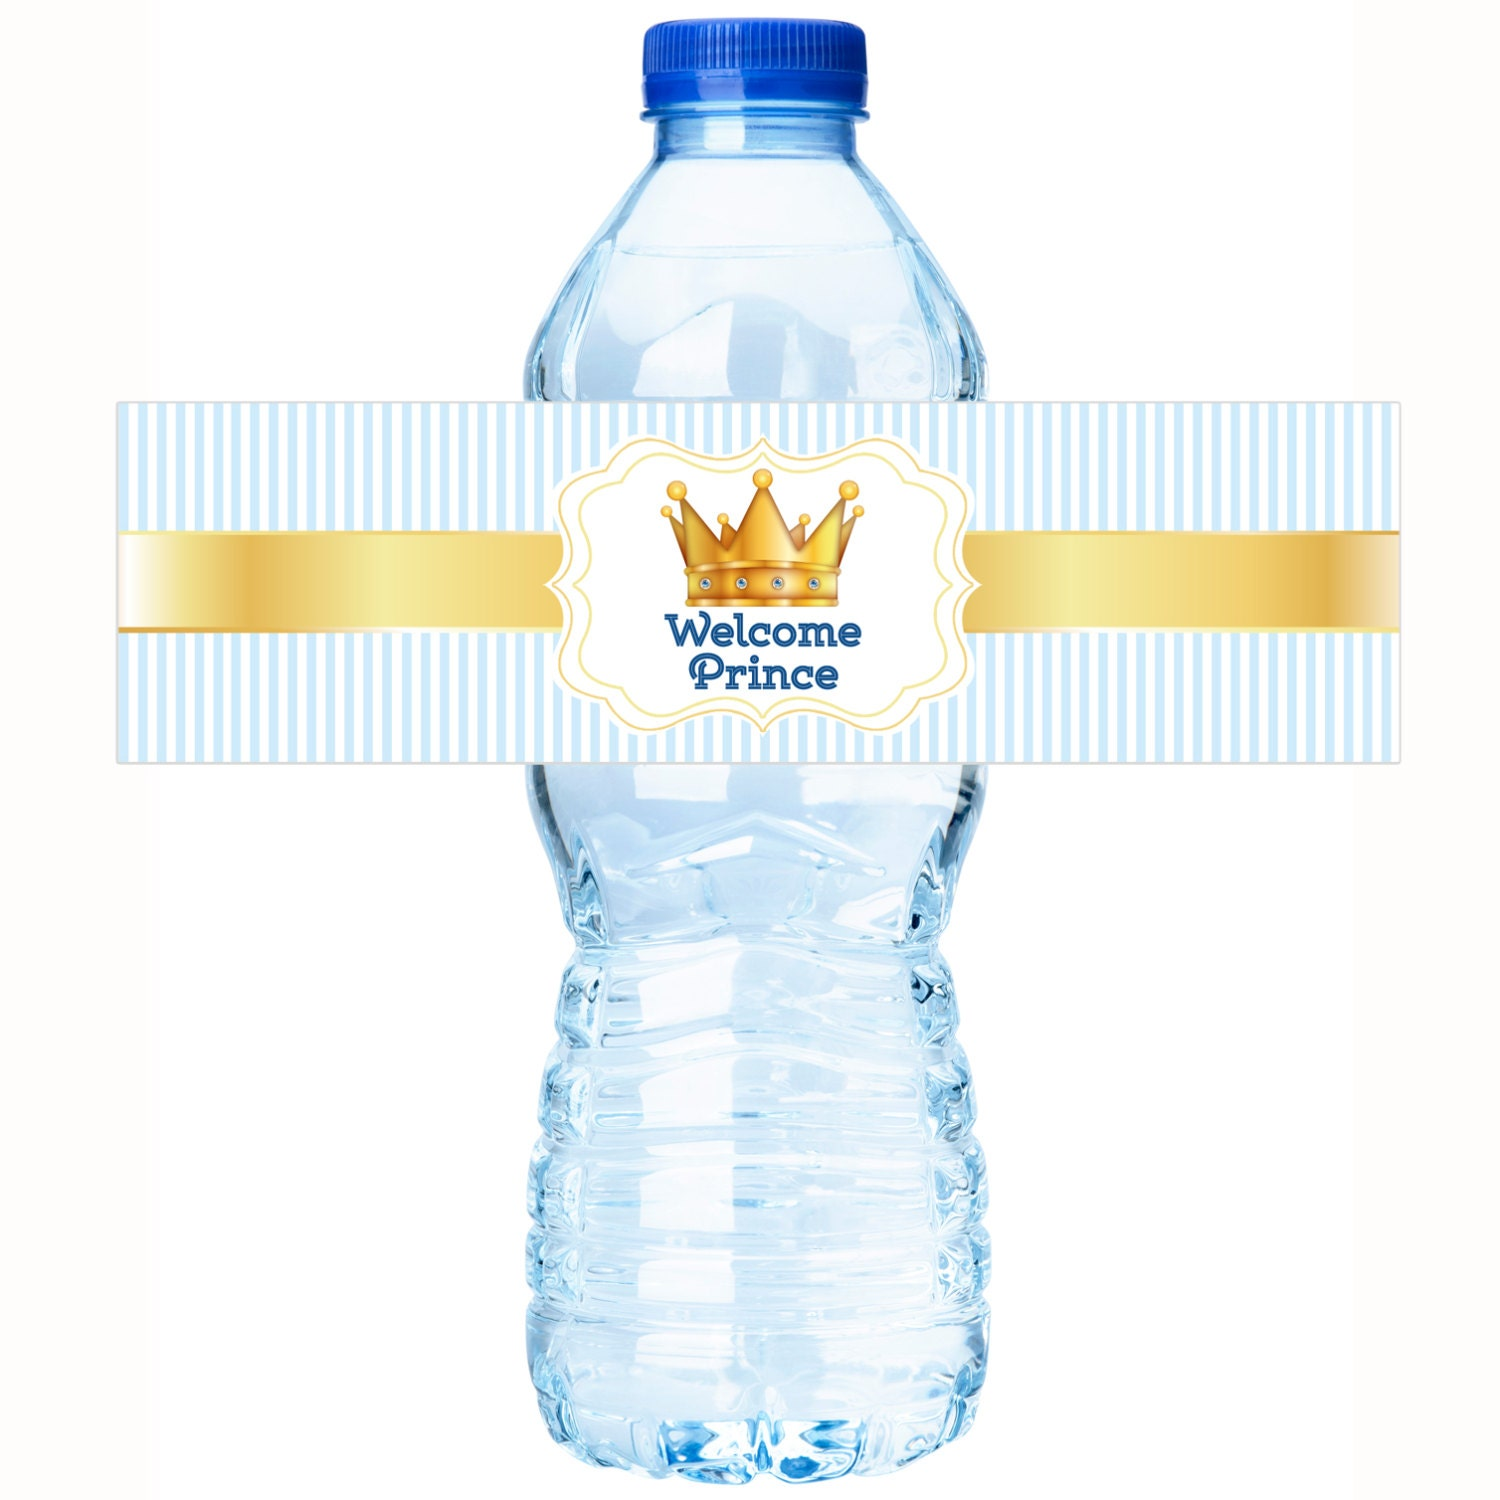 Personalized Welcome Prince Baby Shower Water Bottle Labels